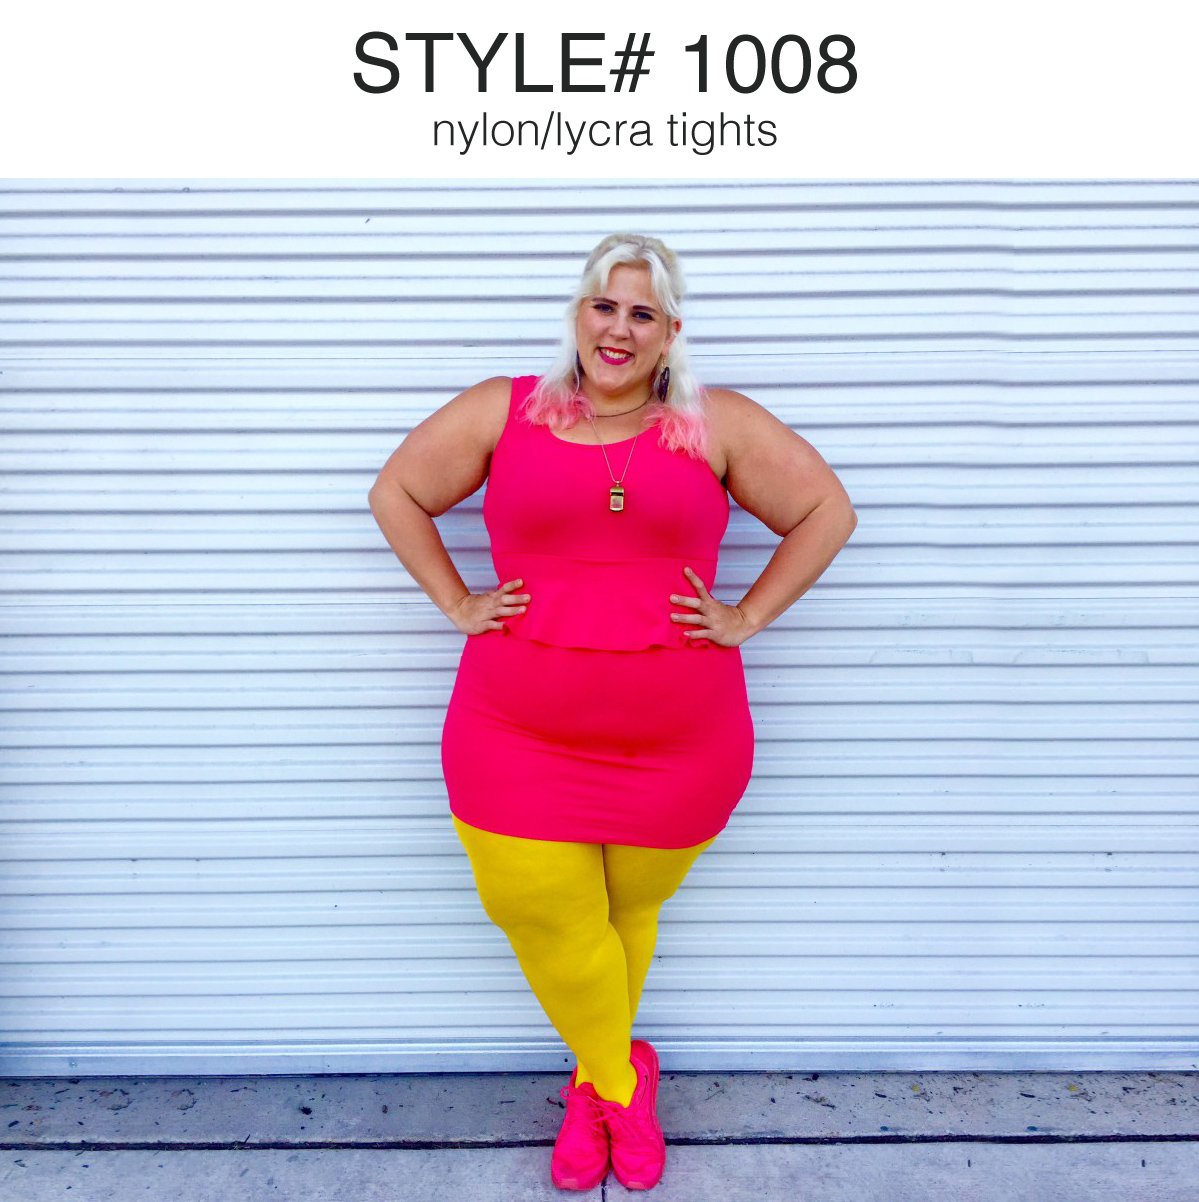 Plus Size woman smiling wearing a neon pink dress and yellow tights